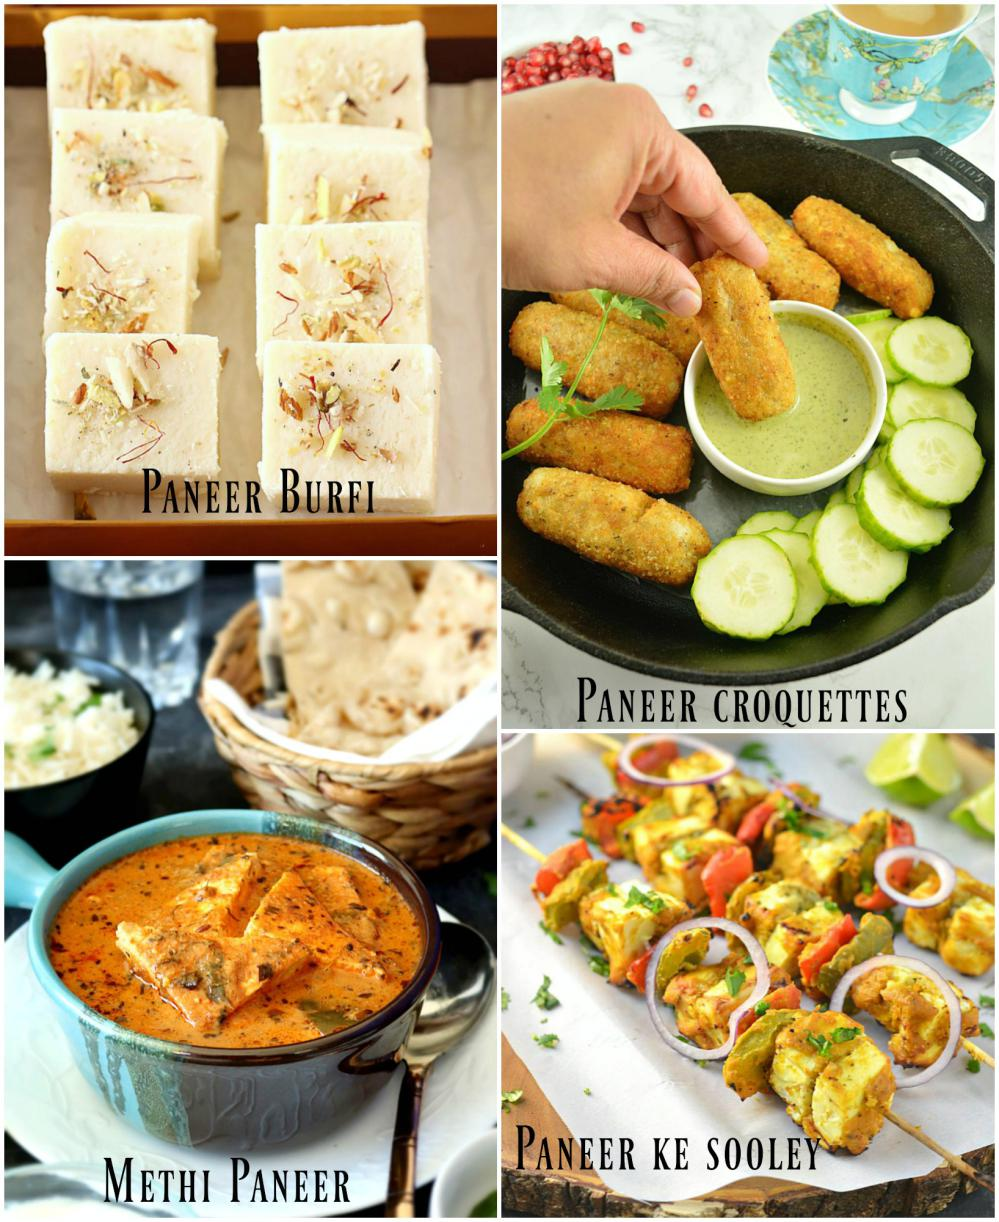 Yummy Paneer collection from Ruchiskitchen